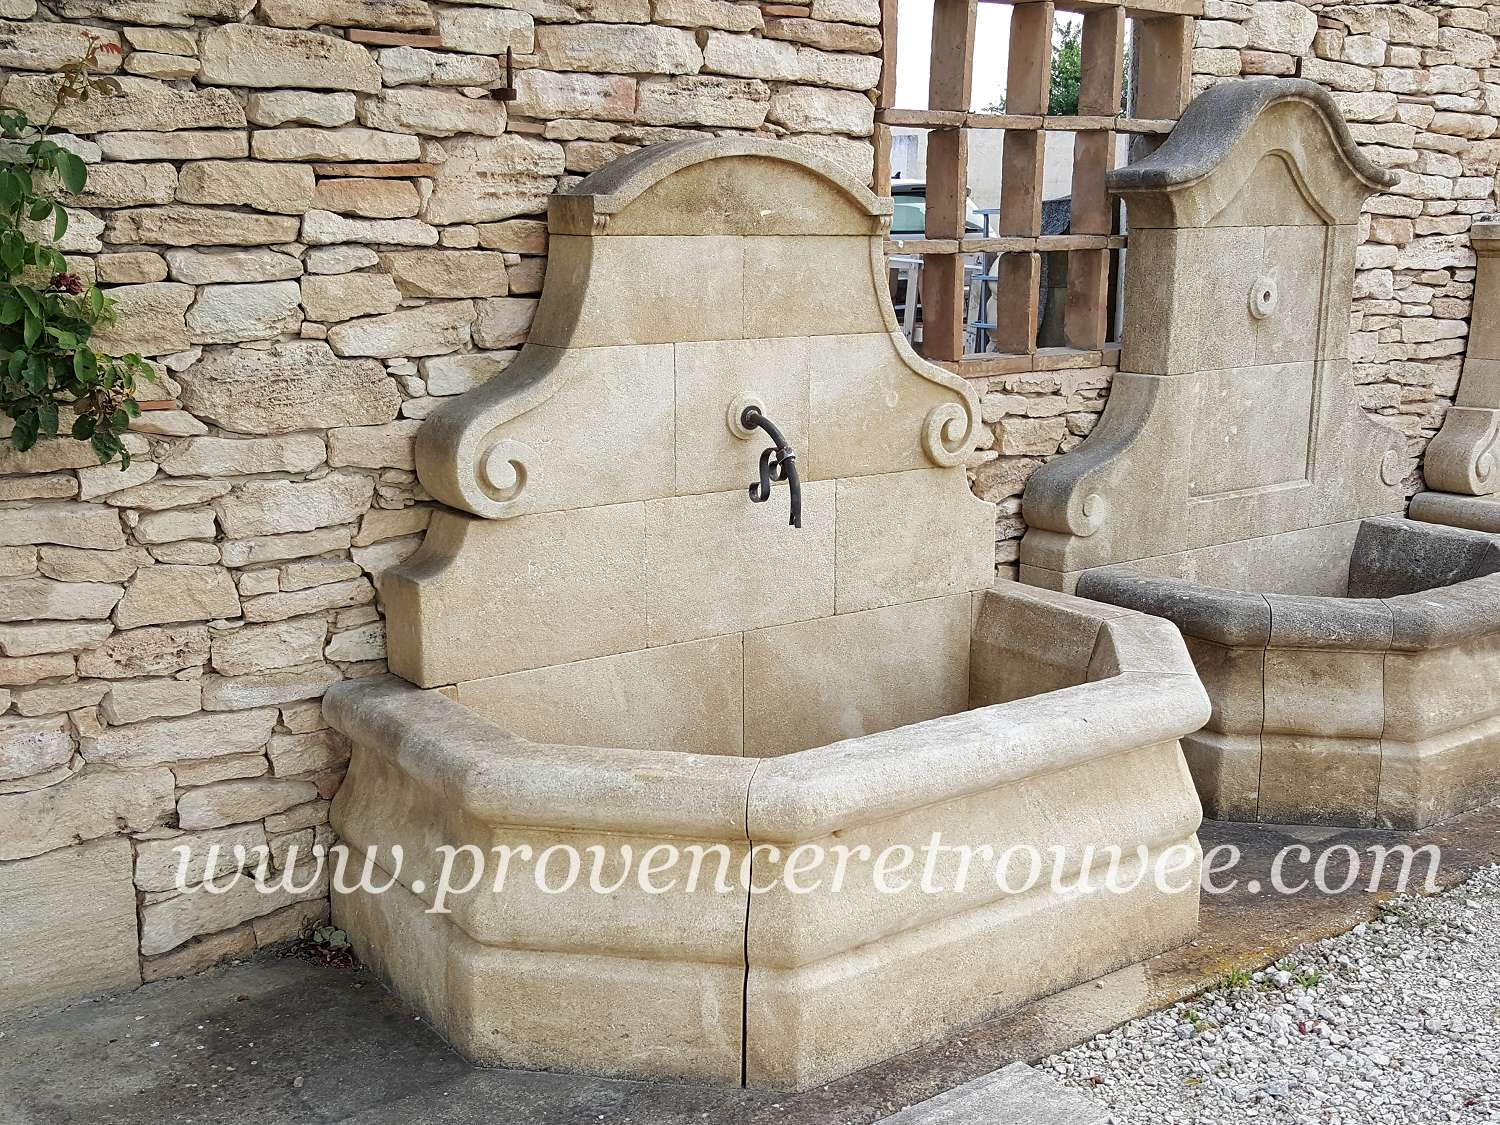 fontaine en pierre de taille avec sculptures fon11 170. Black Bedroom Furniture Sets. Home Design Ideas